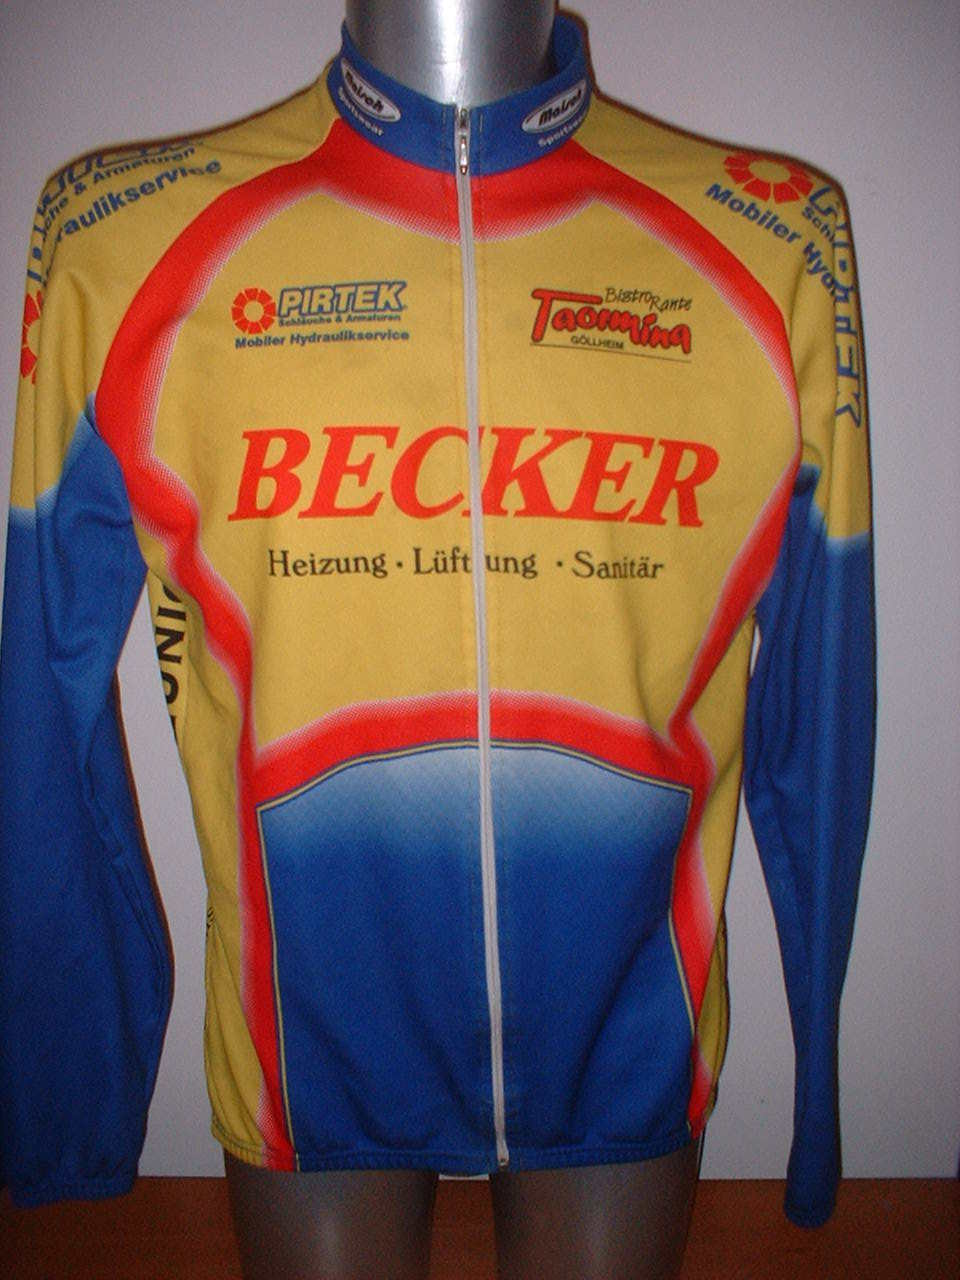 Pirtek  Maisch L S Shirt Jersey Top Adult XXL Cycling Cycle Bike Cyclisme Trikot  sale